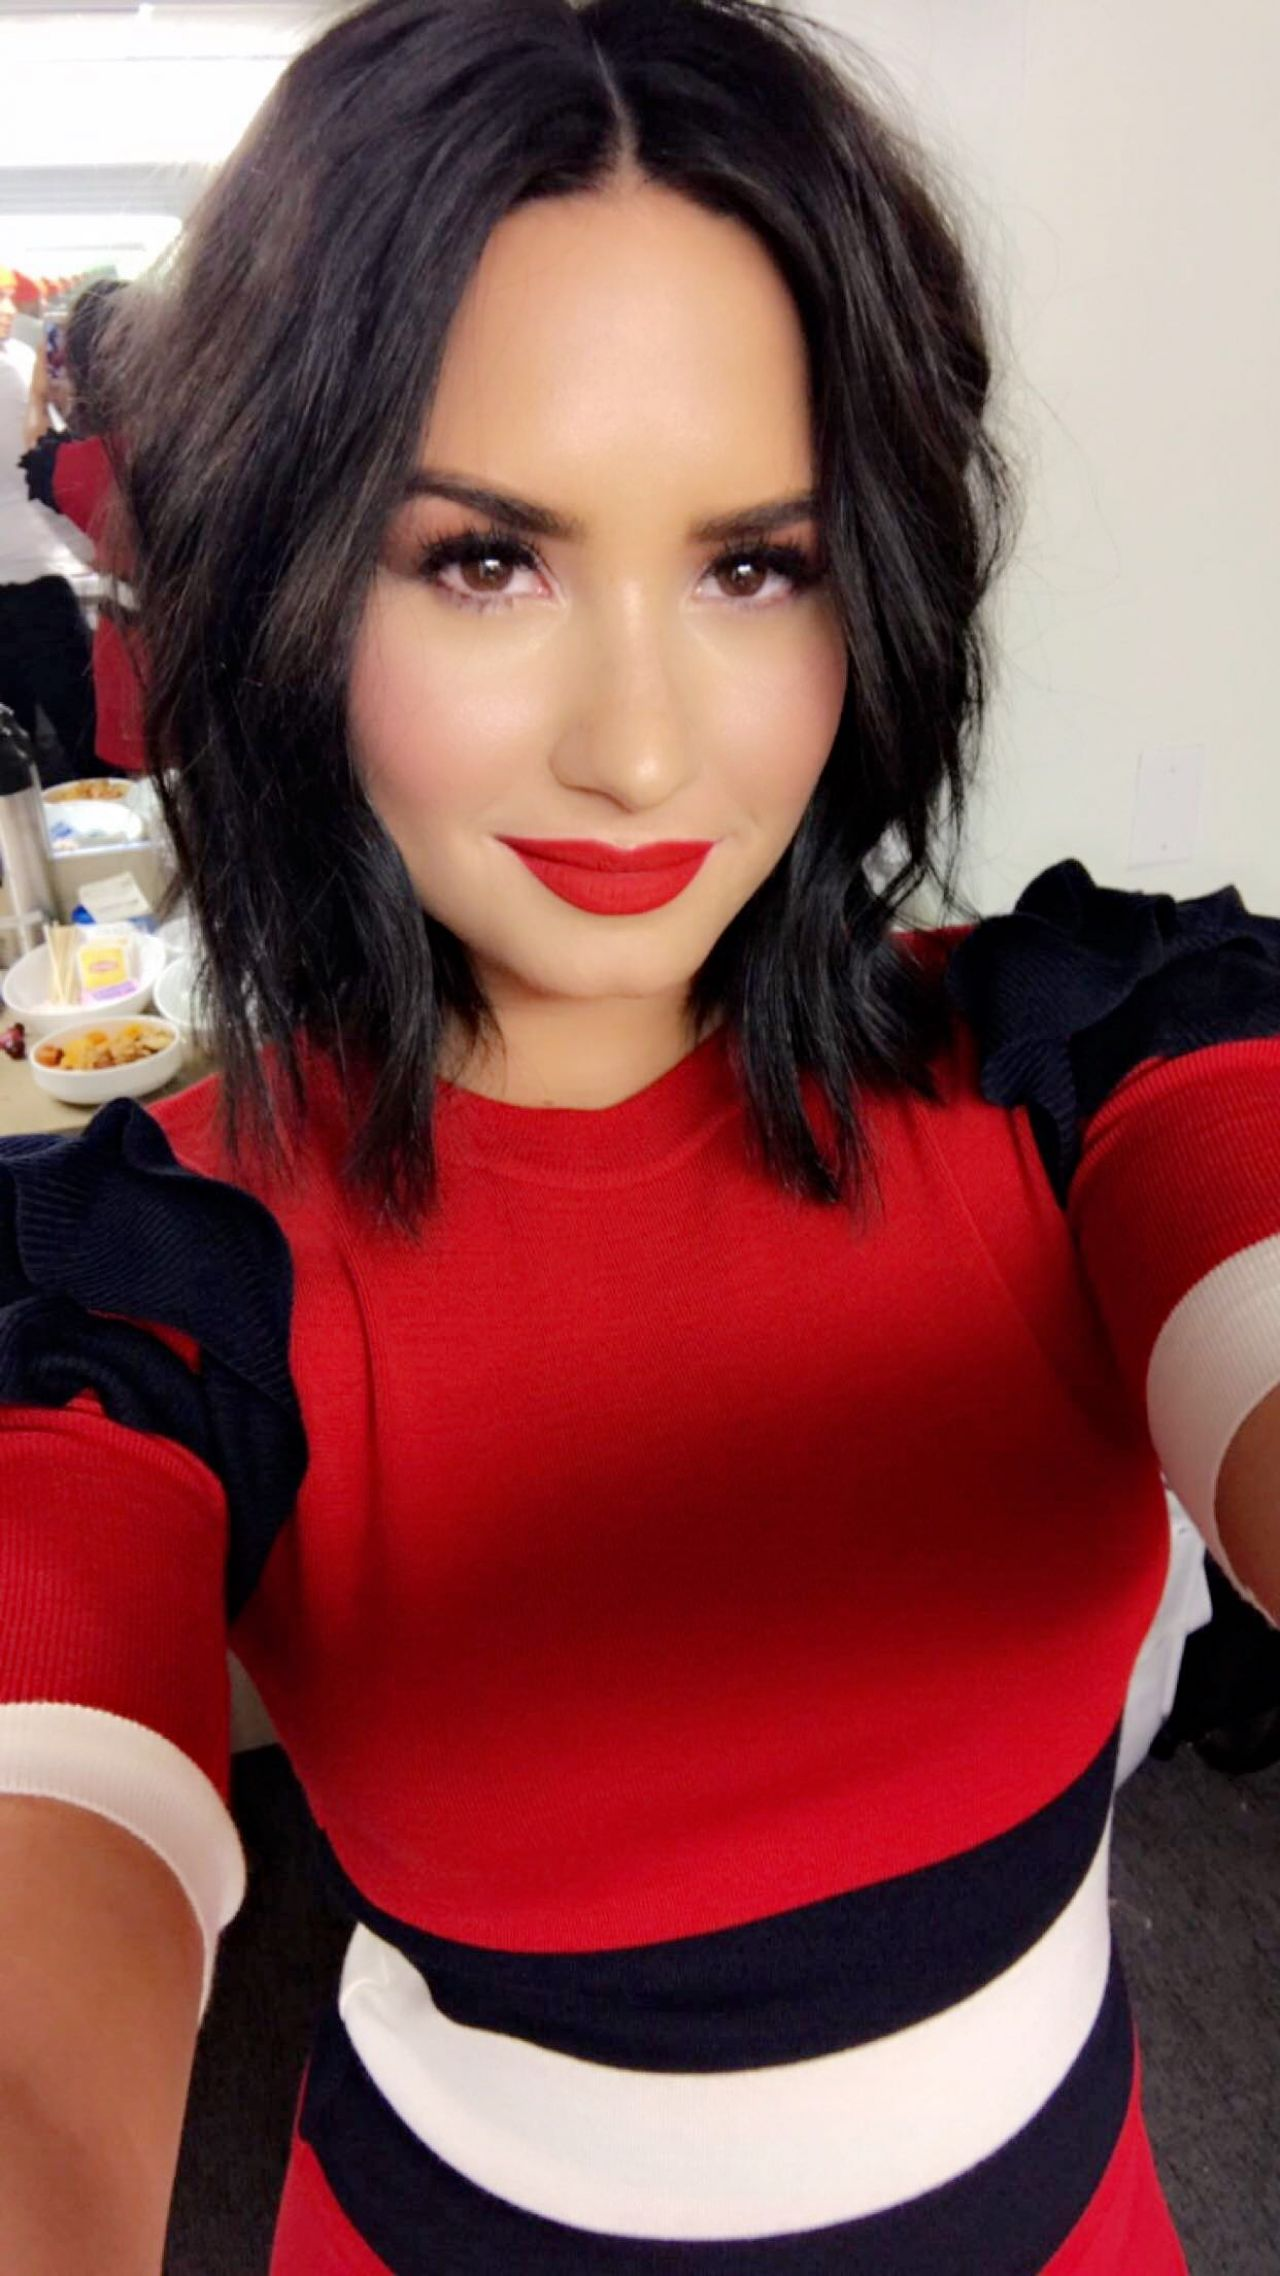 demi lovato - photo #20